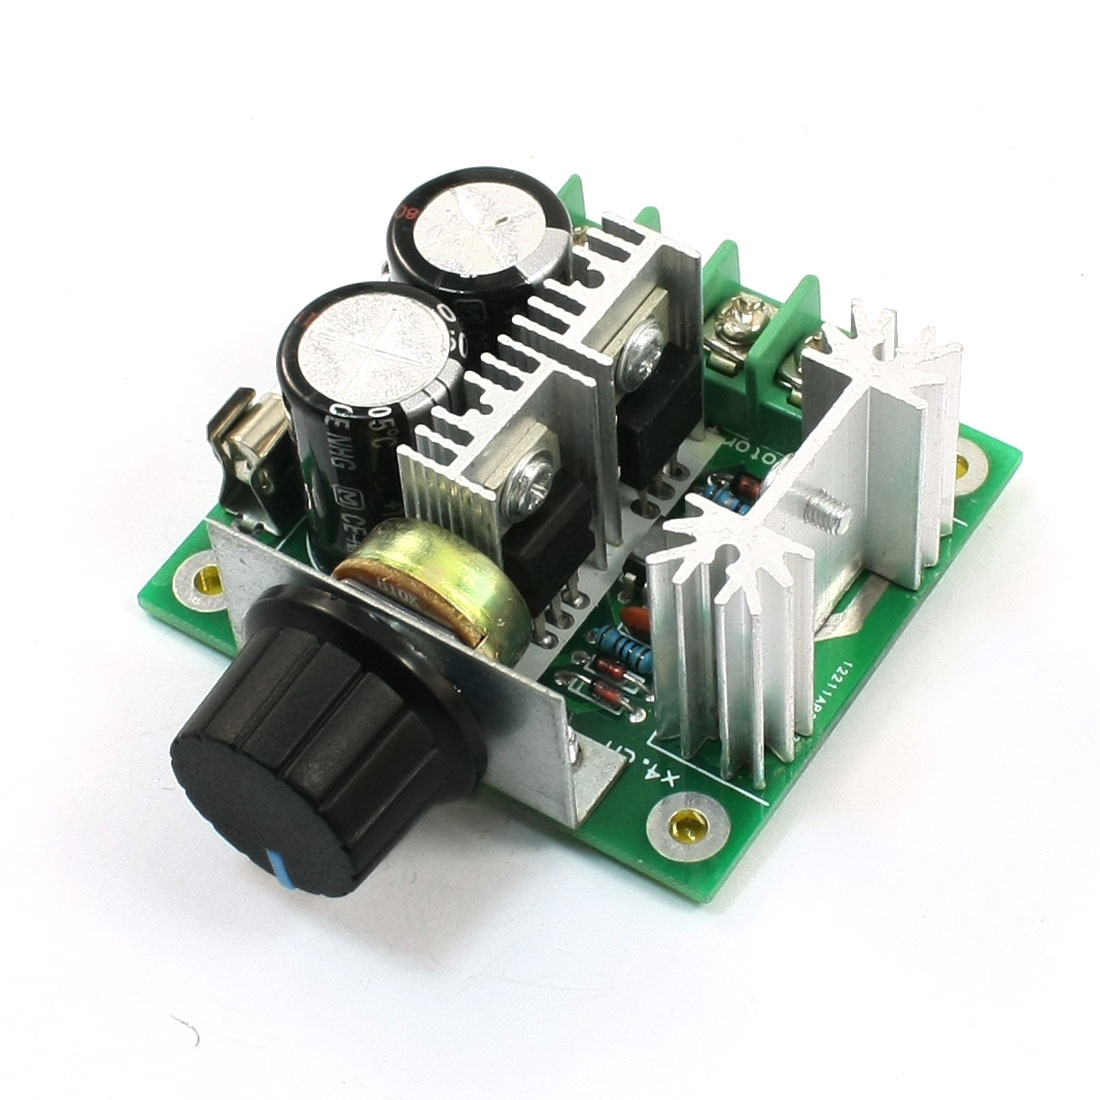 12-40V-10A-DC-Motor-Speed-Regulator-Stepless-Variable-Controller